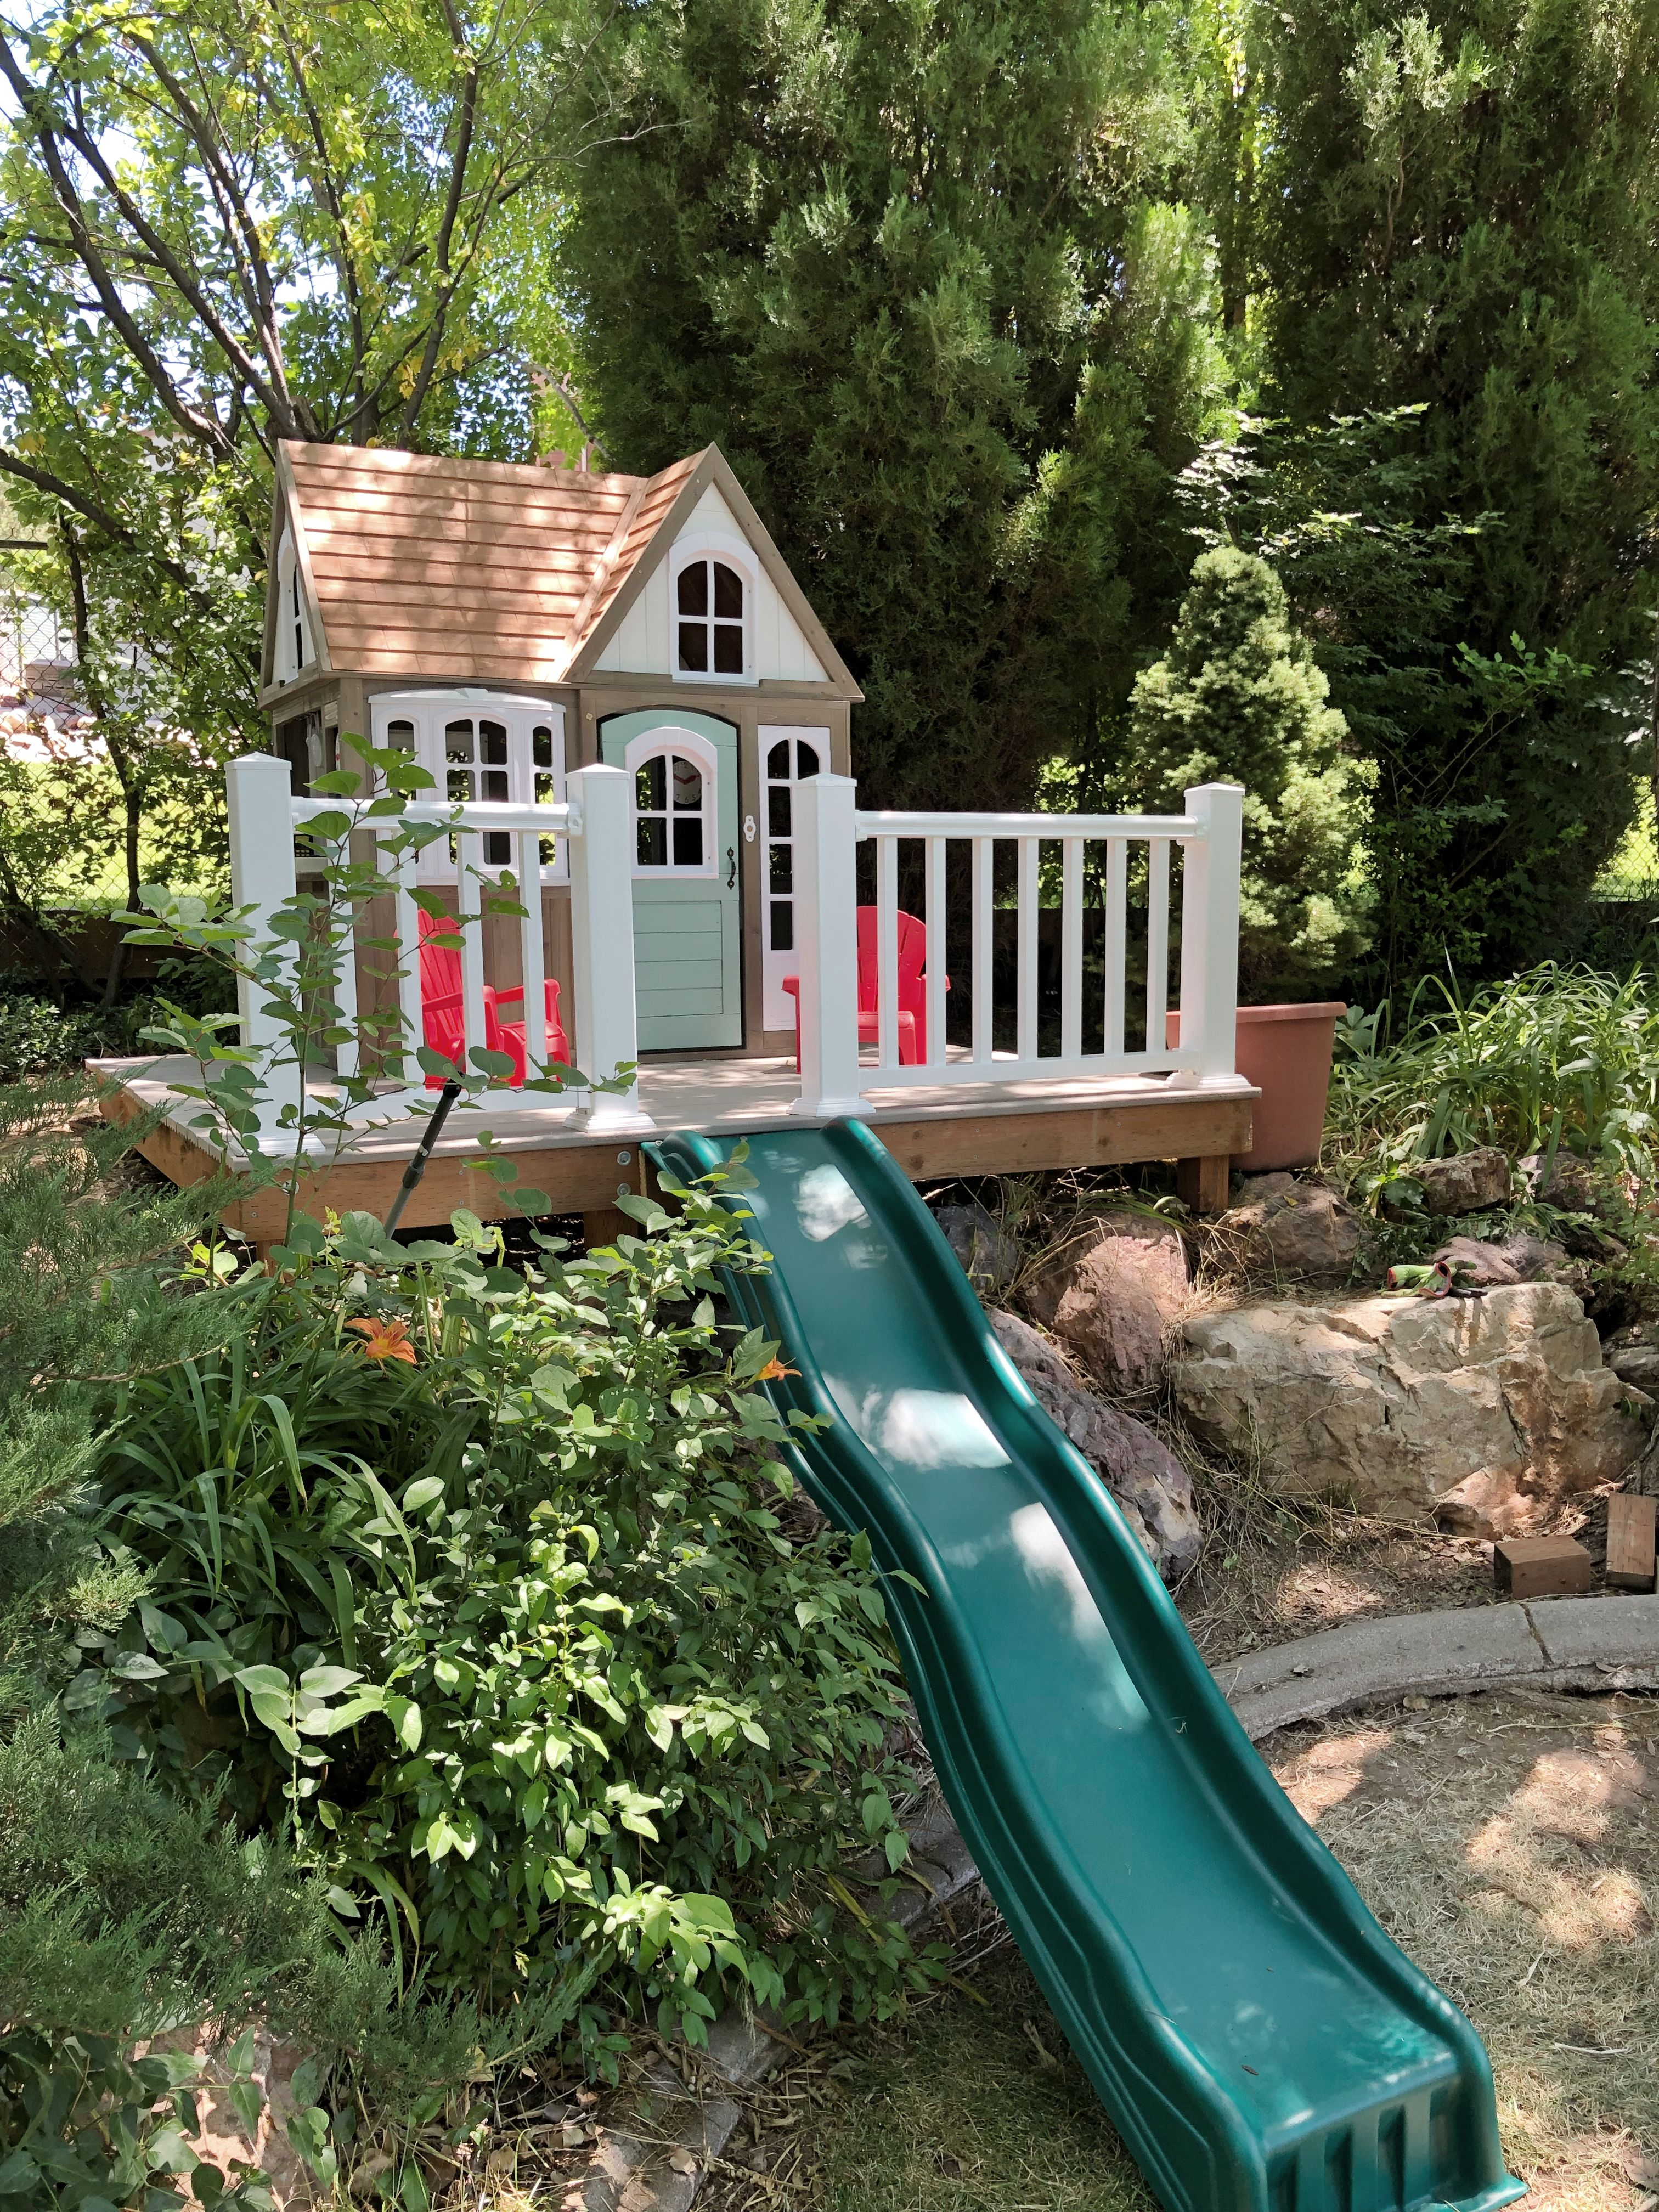 My Costco Outdoor Playhouse Hack and platform terrace ...